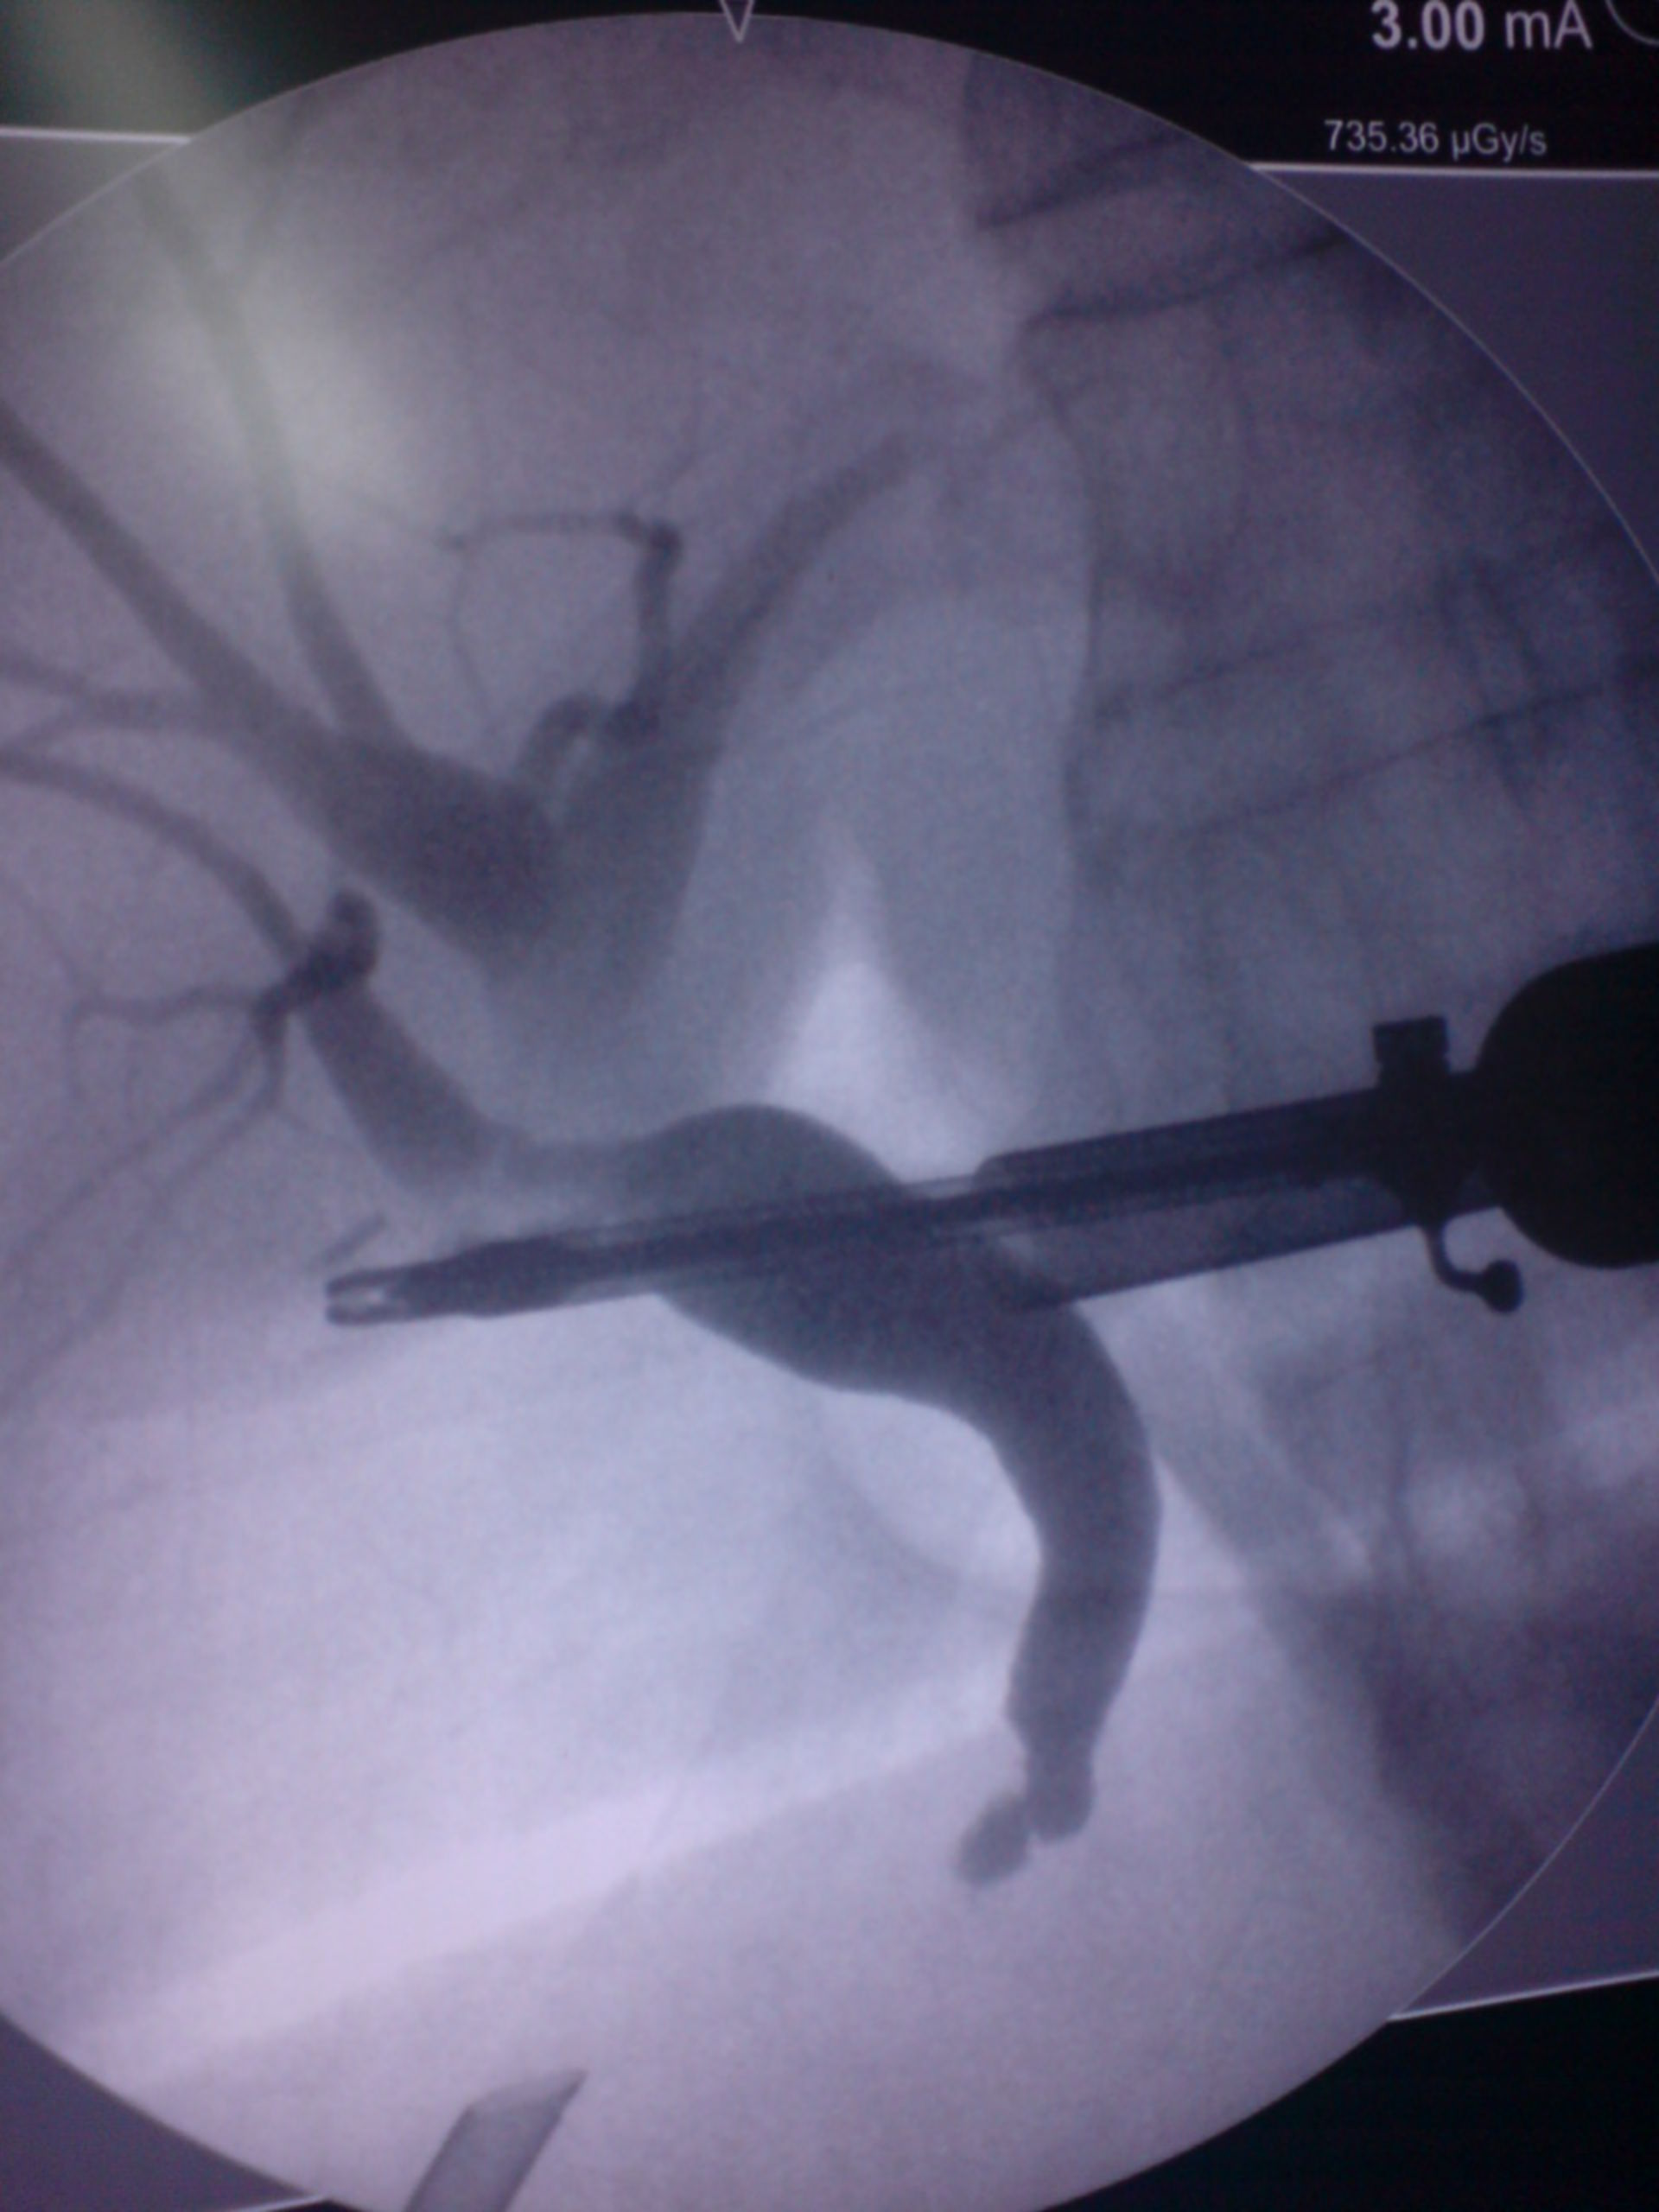 Cholangiography